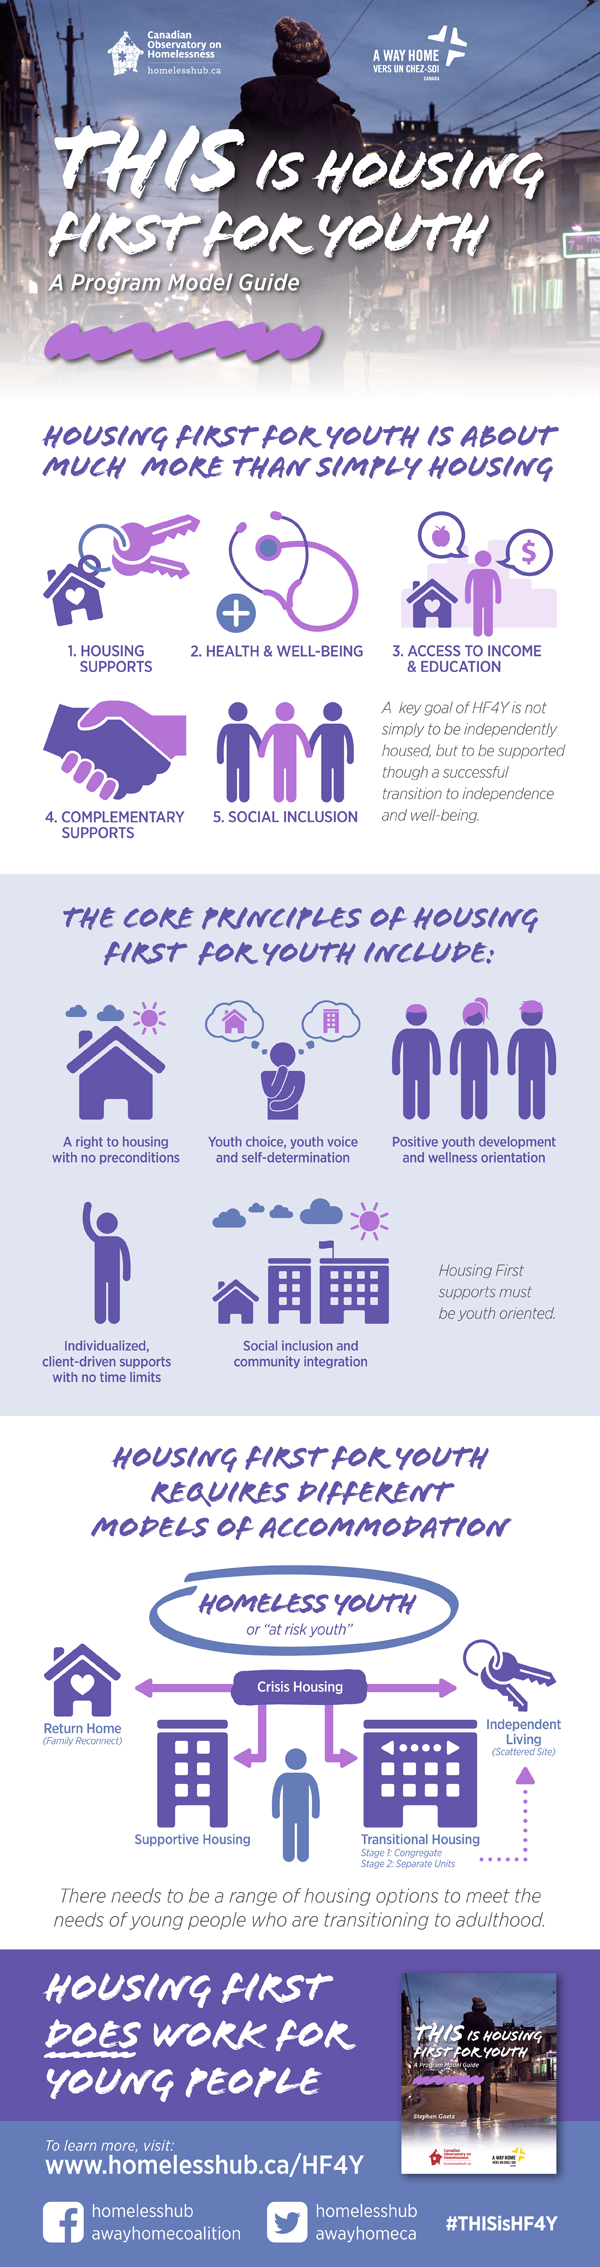 THIS is Housing First for Youth - An infographic summary of the program model guide